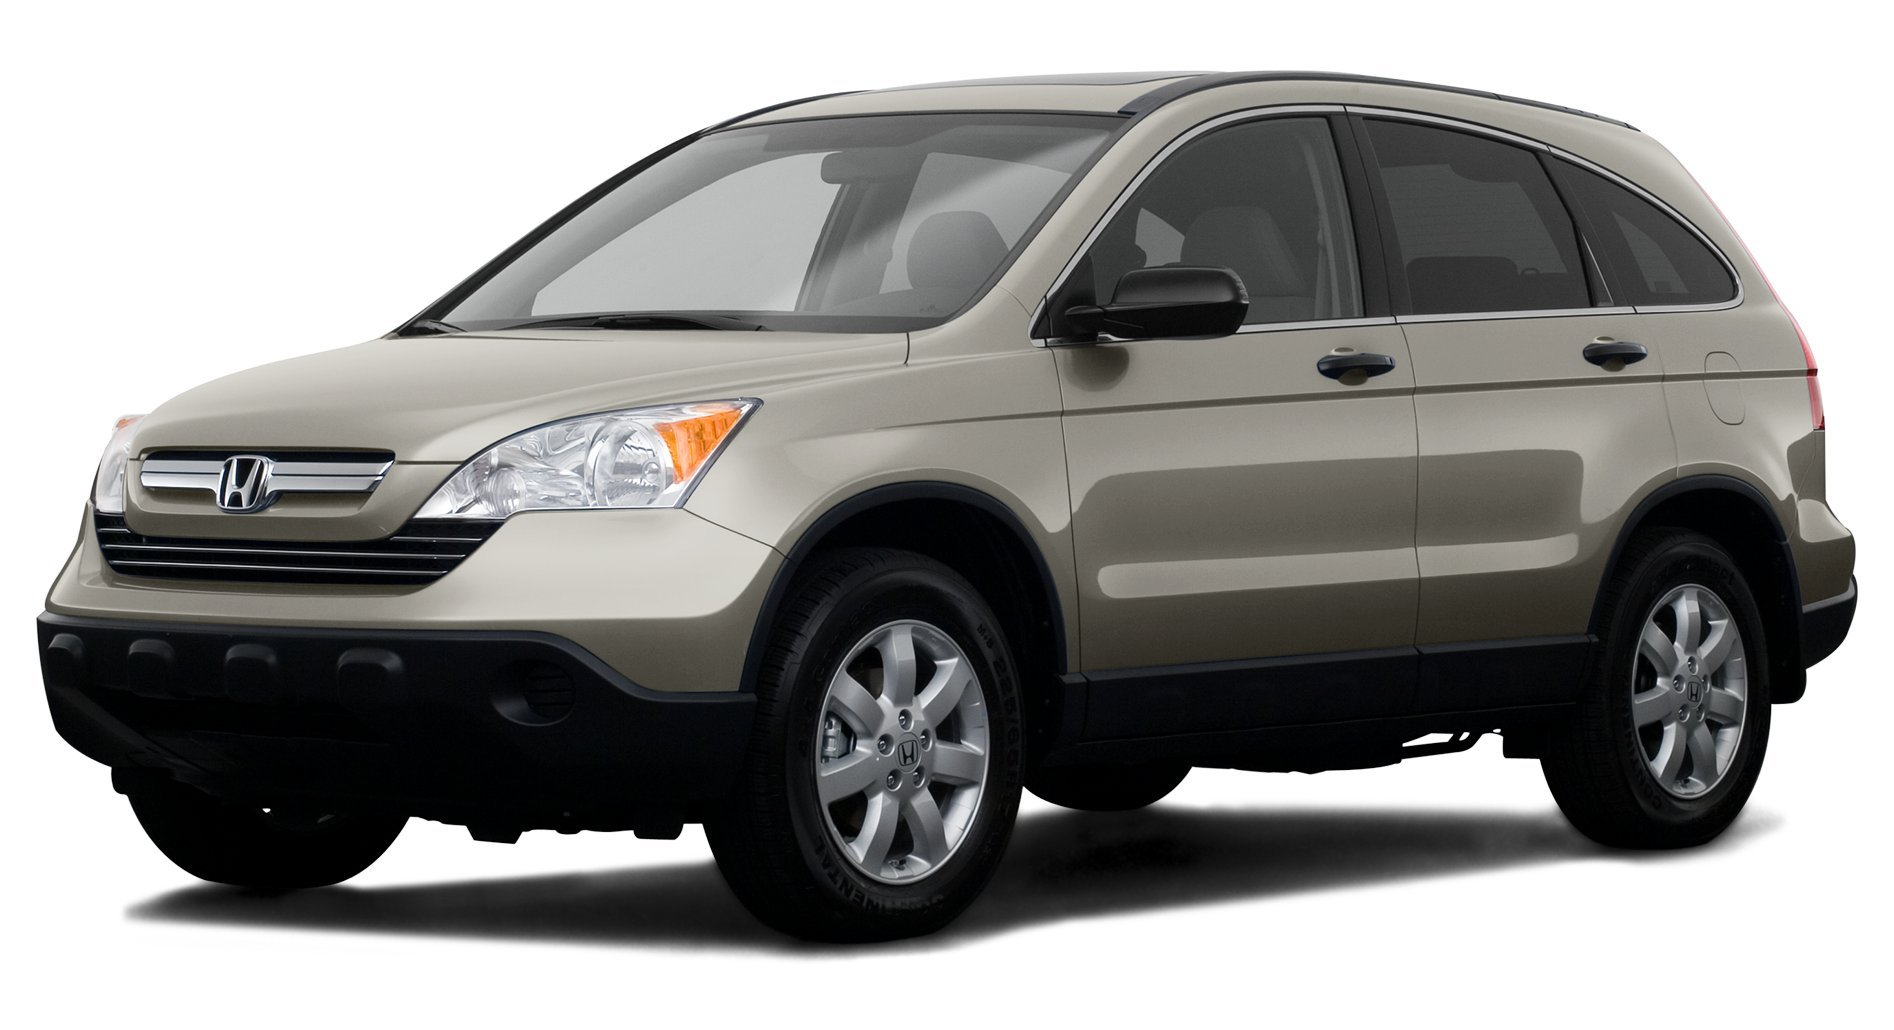 2008 honda cr v reviews images and specs vehicles. Black Bedroom Furniture Sets. Home Design Ideas